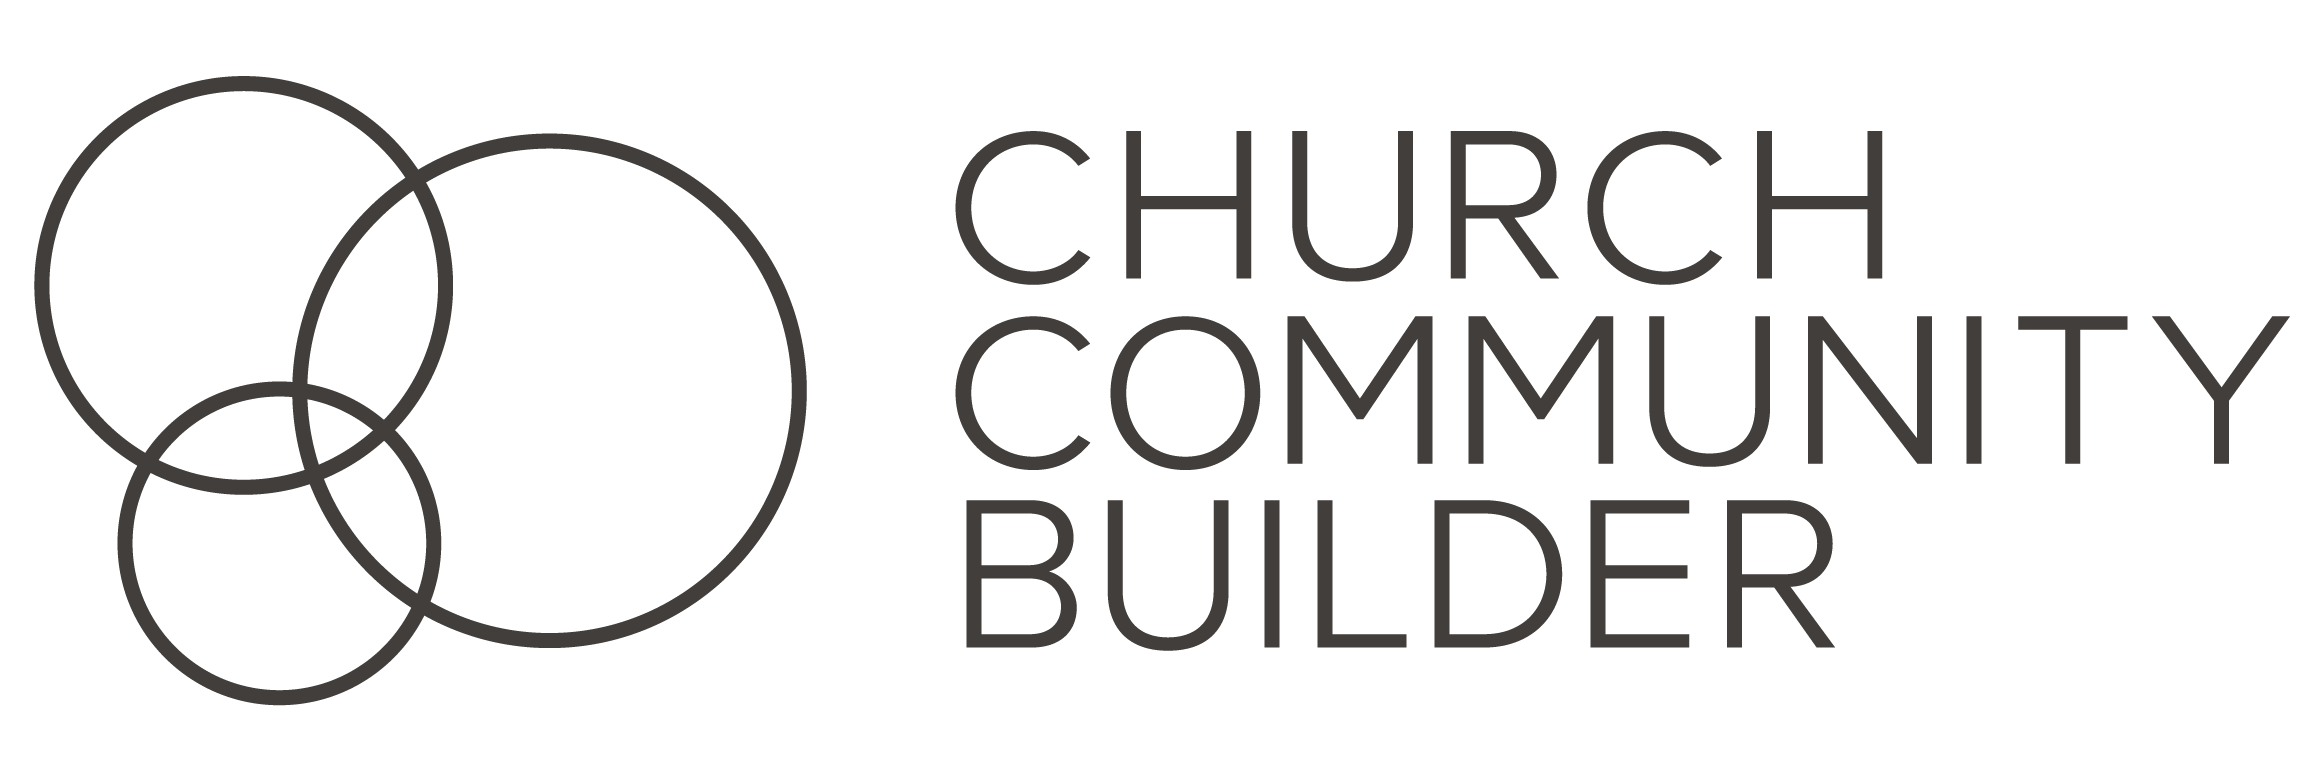 Church Community Builder logo.png